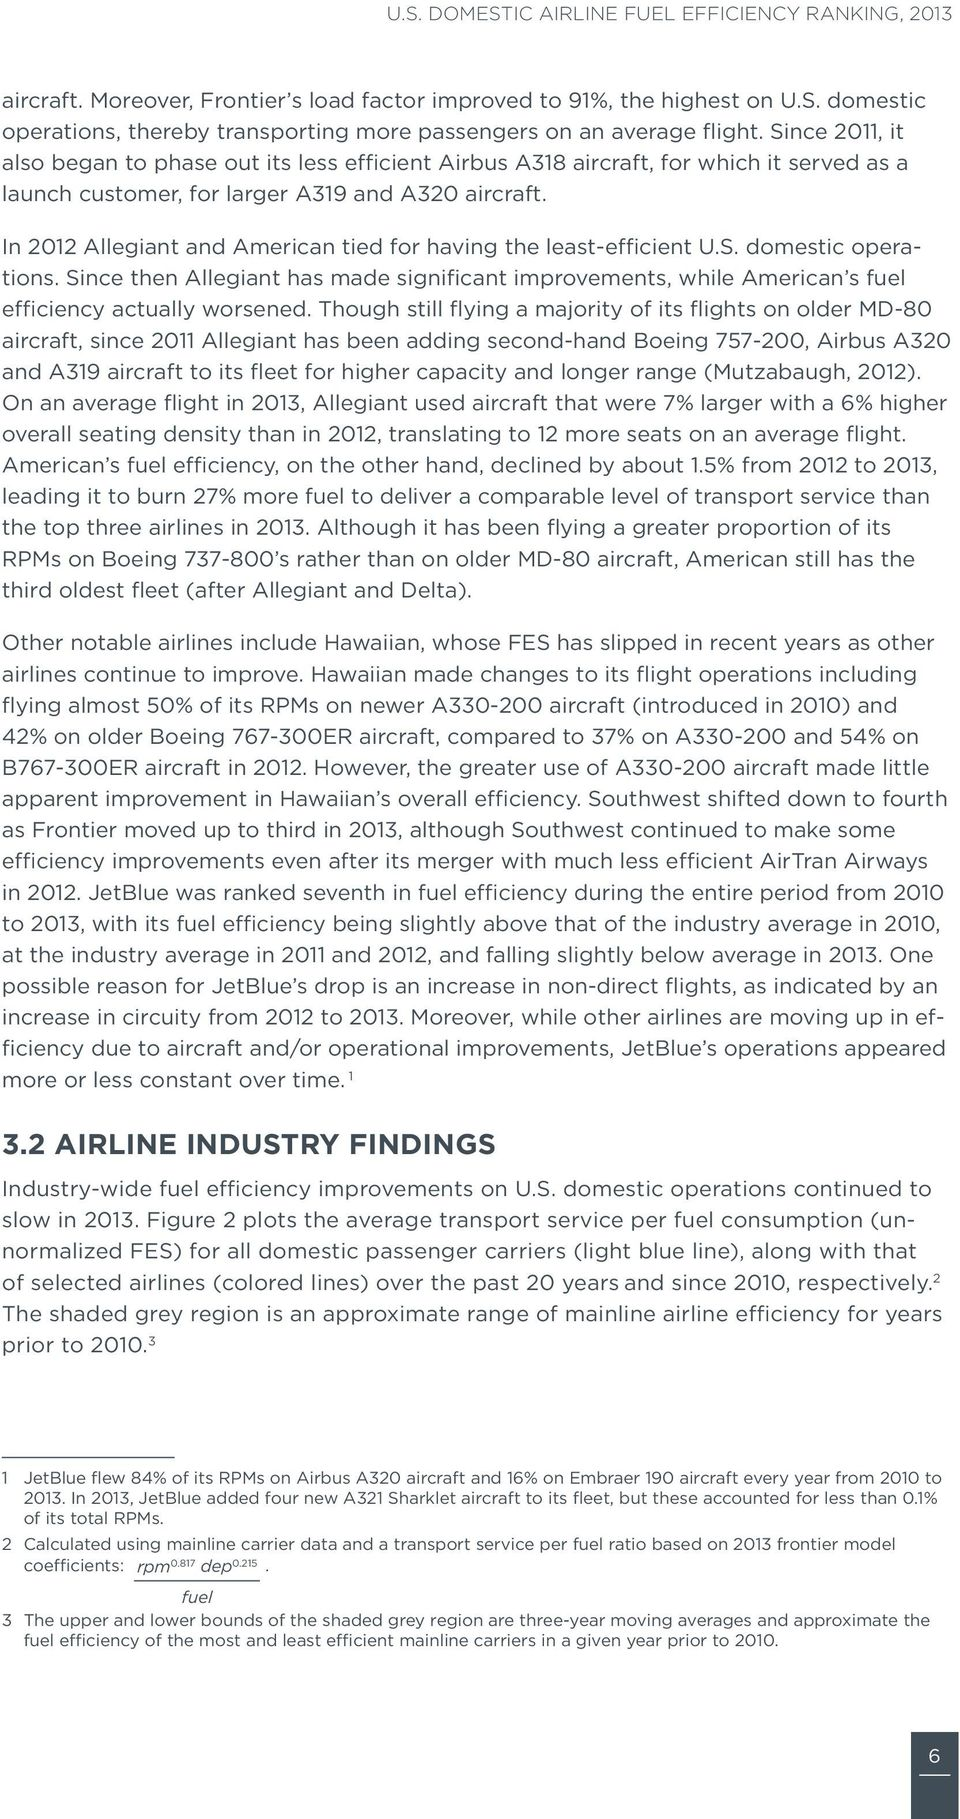 In 2012 Allegiant and American tied for having the least-efficient U.S. domestic operations. Since then Allegiant has made significant improvements, while American s fuel efficiency actually worsened.